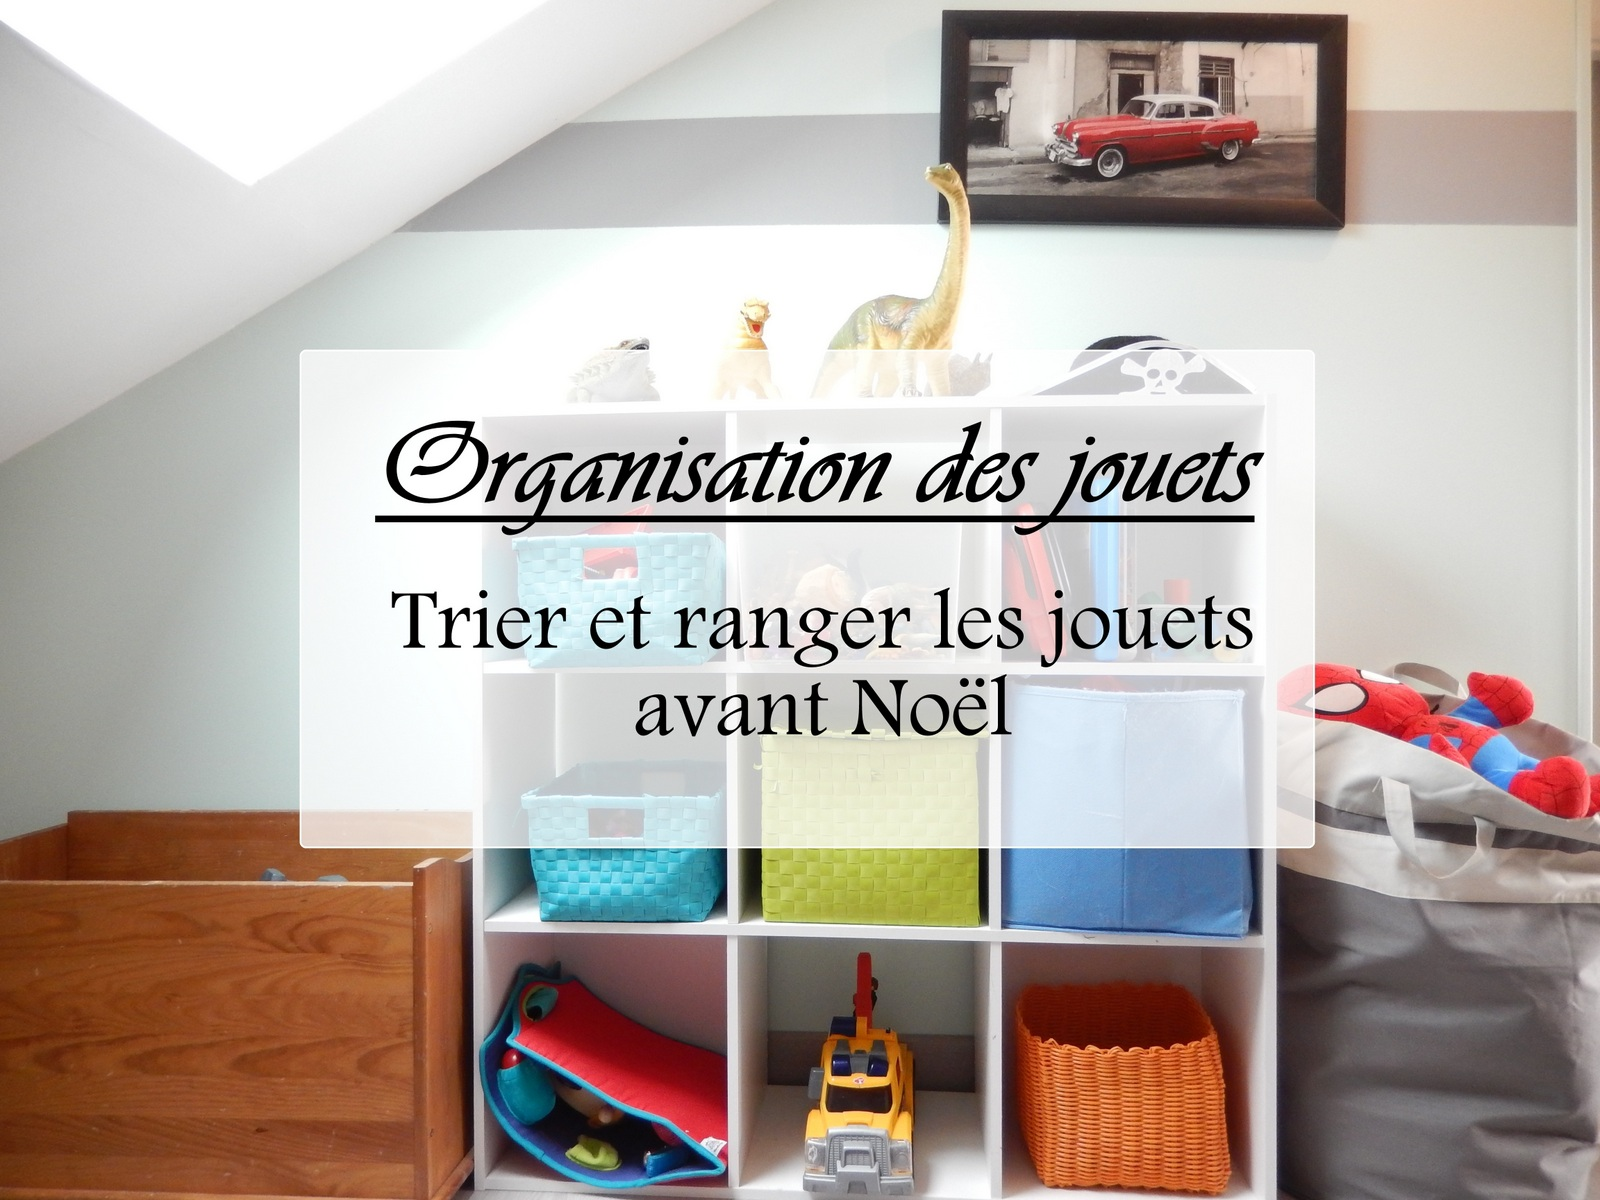 organisation des jouets trier et ranger les jouets avant no l mon carnet d co diy. Black Bedroom Furniture Sets. Home Design Ideas